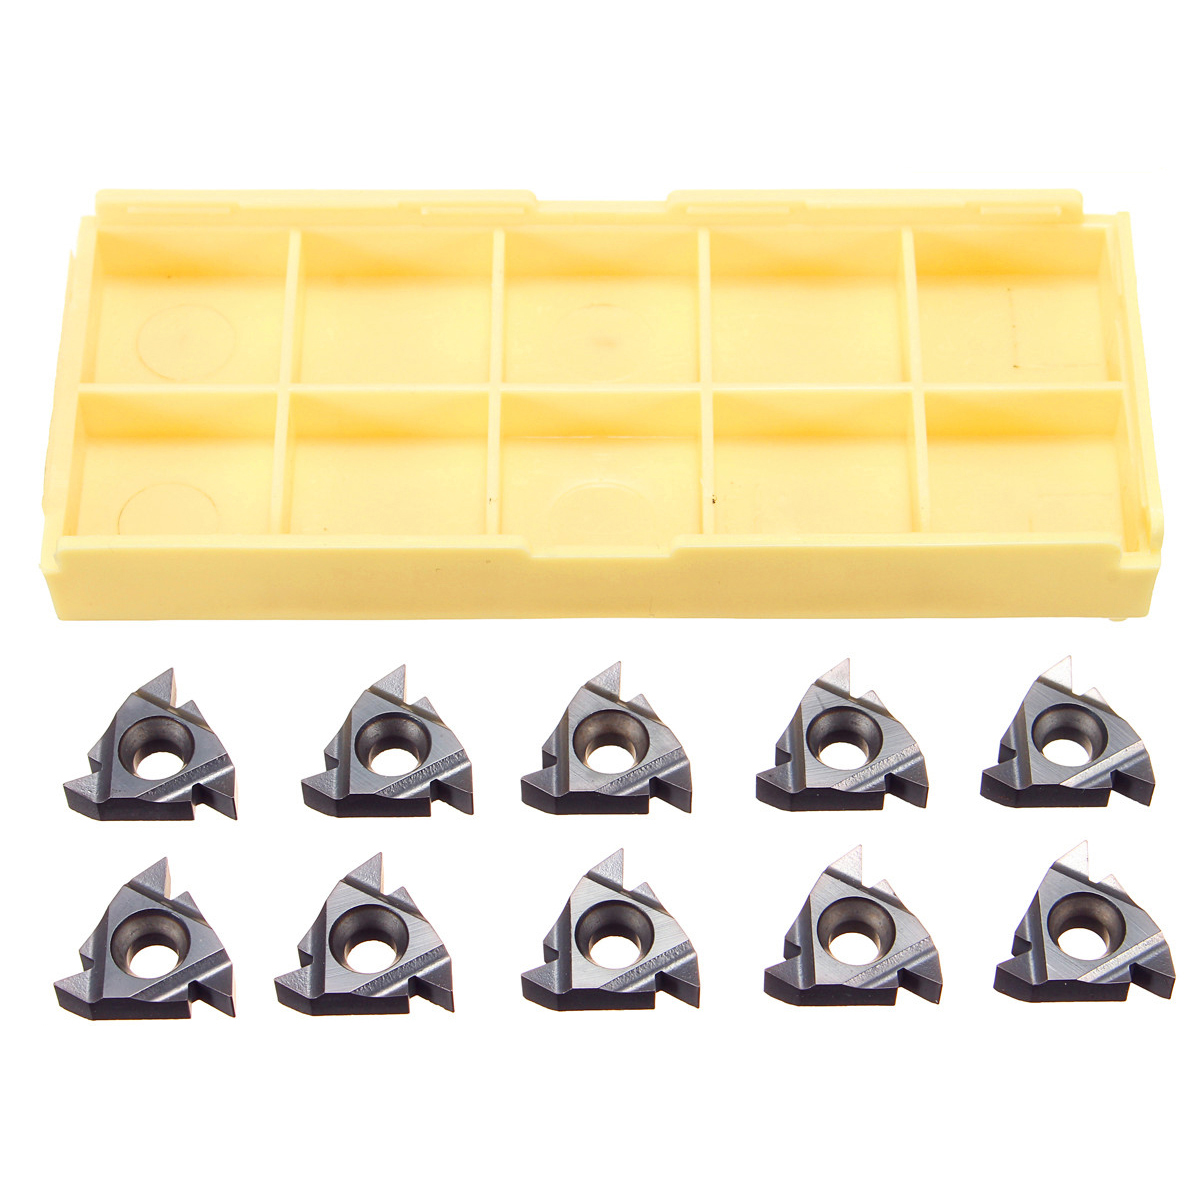 Drillpro 10PCS 16ER AG55 Carbide Threading Inserts For Steel/Stainless Steel Turning Tool